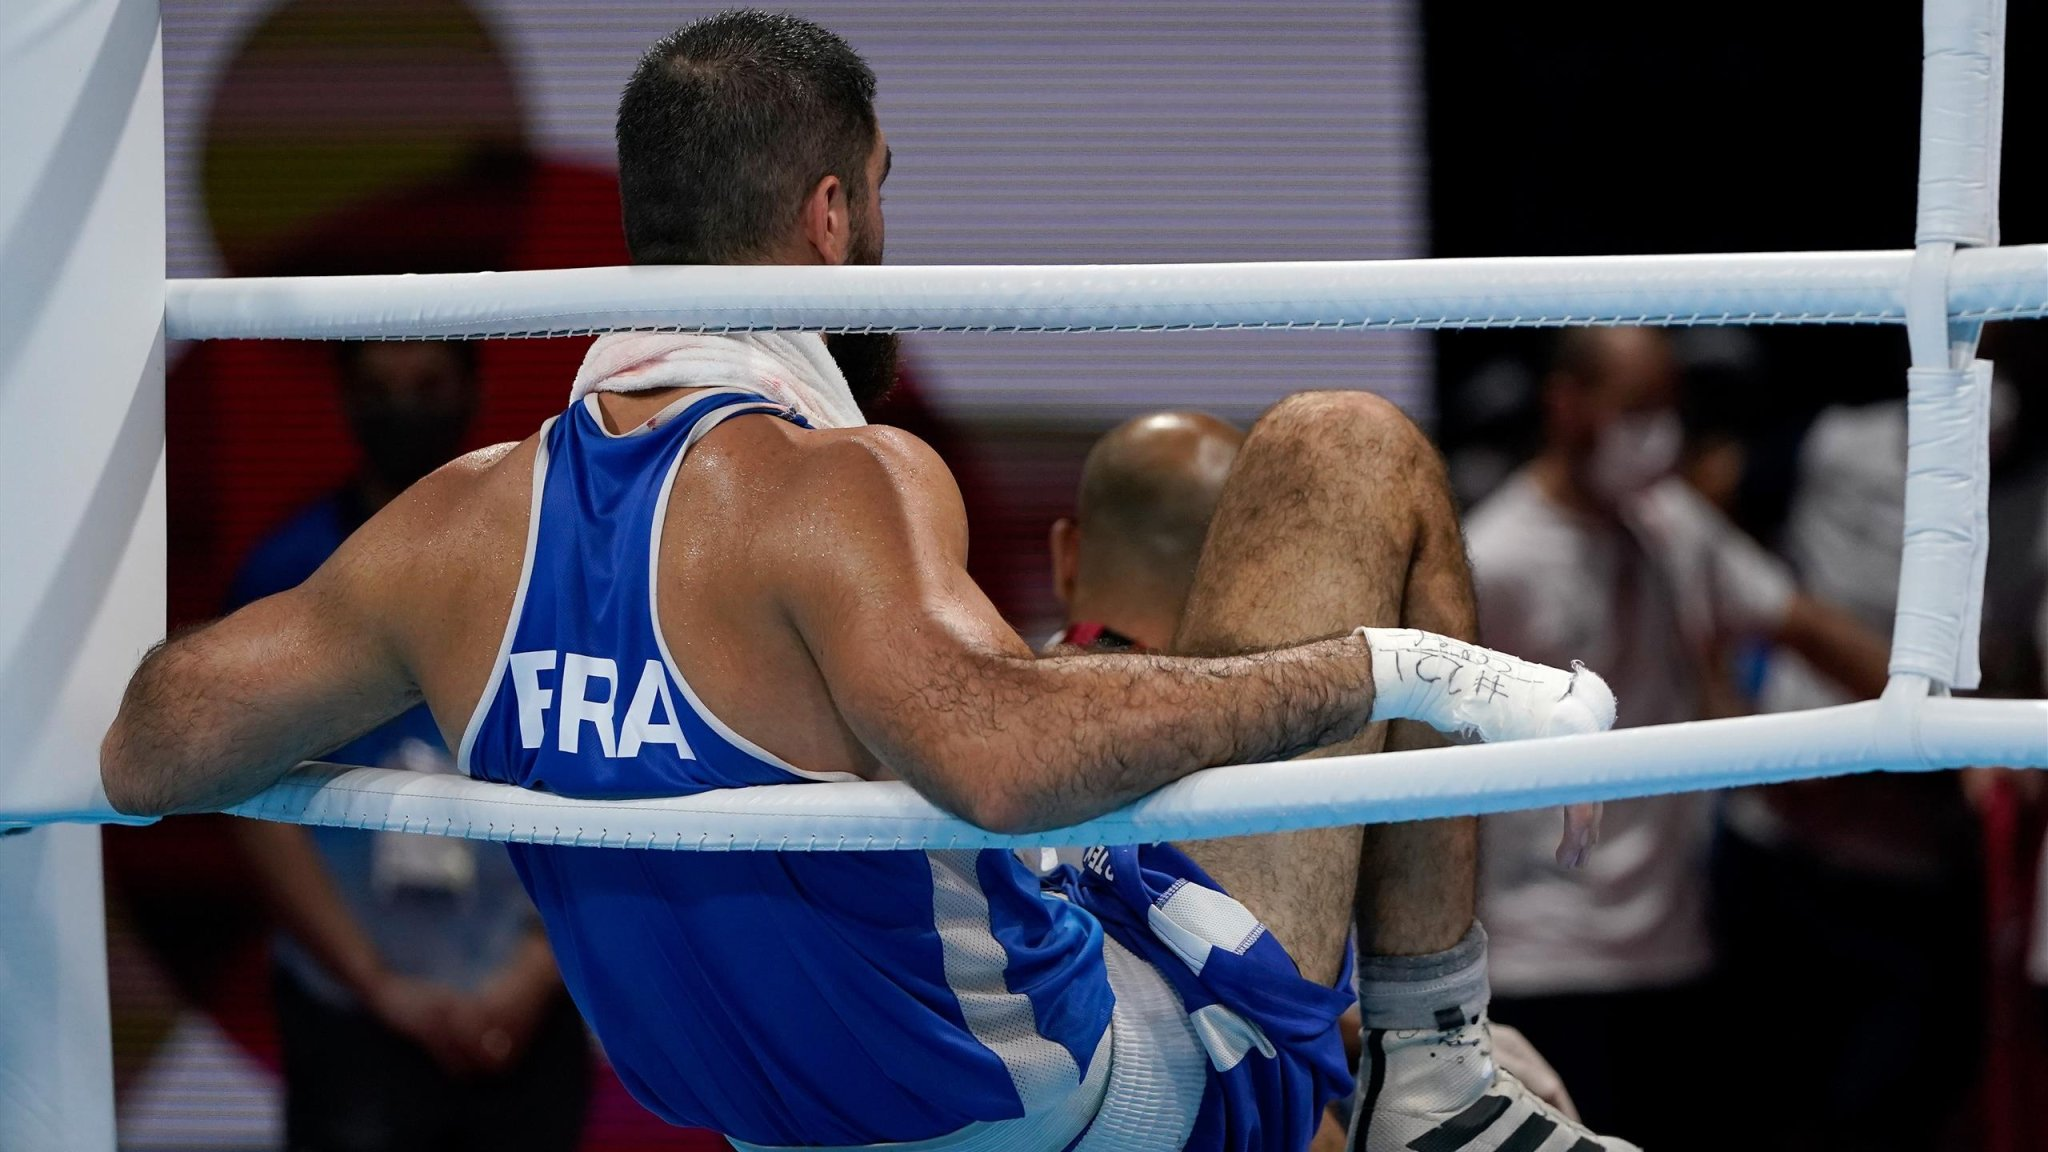 Tokyo 2020 - Mourad Aliev stages sit-in protest after disqualification hands GB's Frazer Clarke semi-final spot